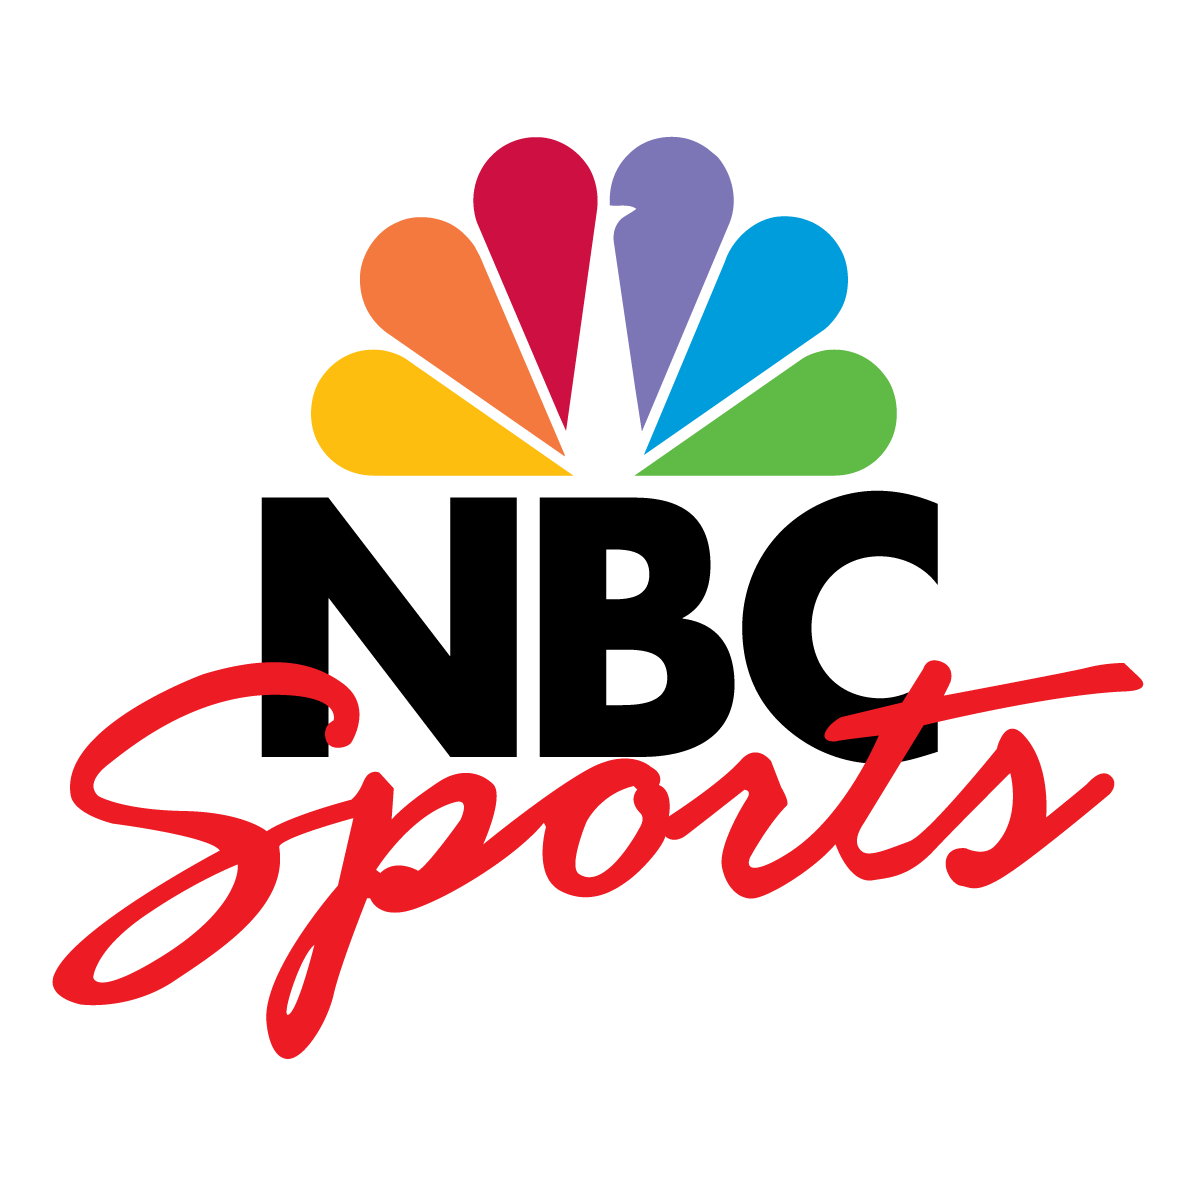 Image - NBC Sports.png - Logopedia, the logo and branding site